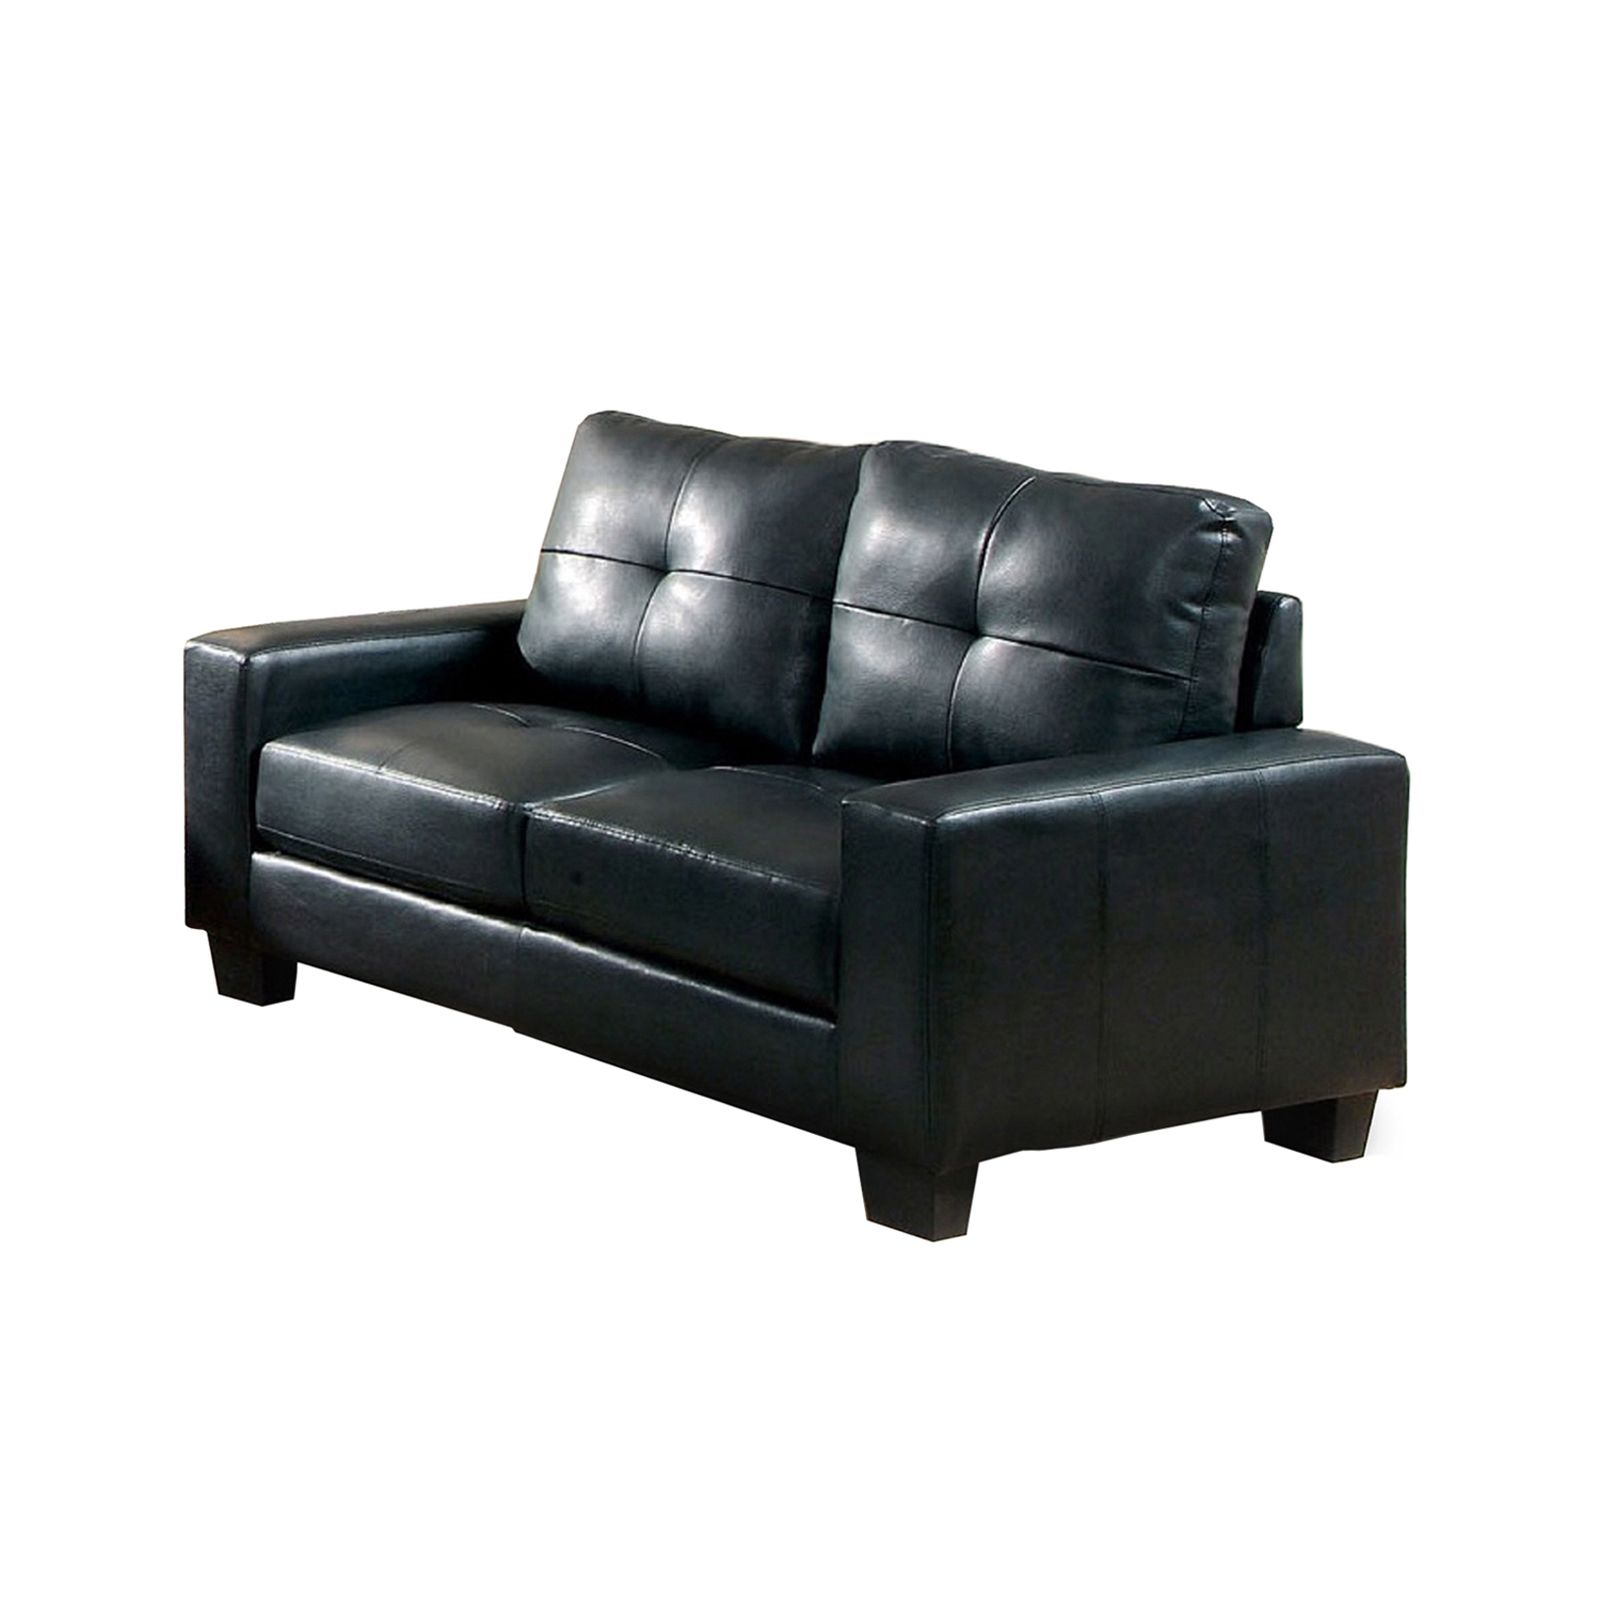 Super Furniture Of America Boris Modern Black Bonded Leather Match Caraccident5 Cool Chair Designs And Ideas Caraccident5Info